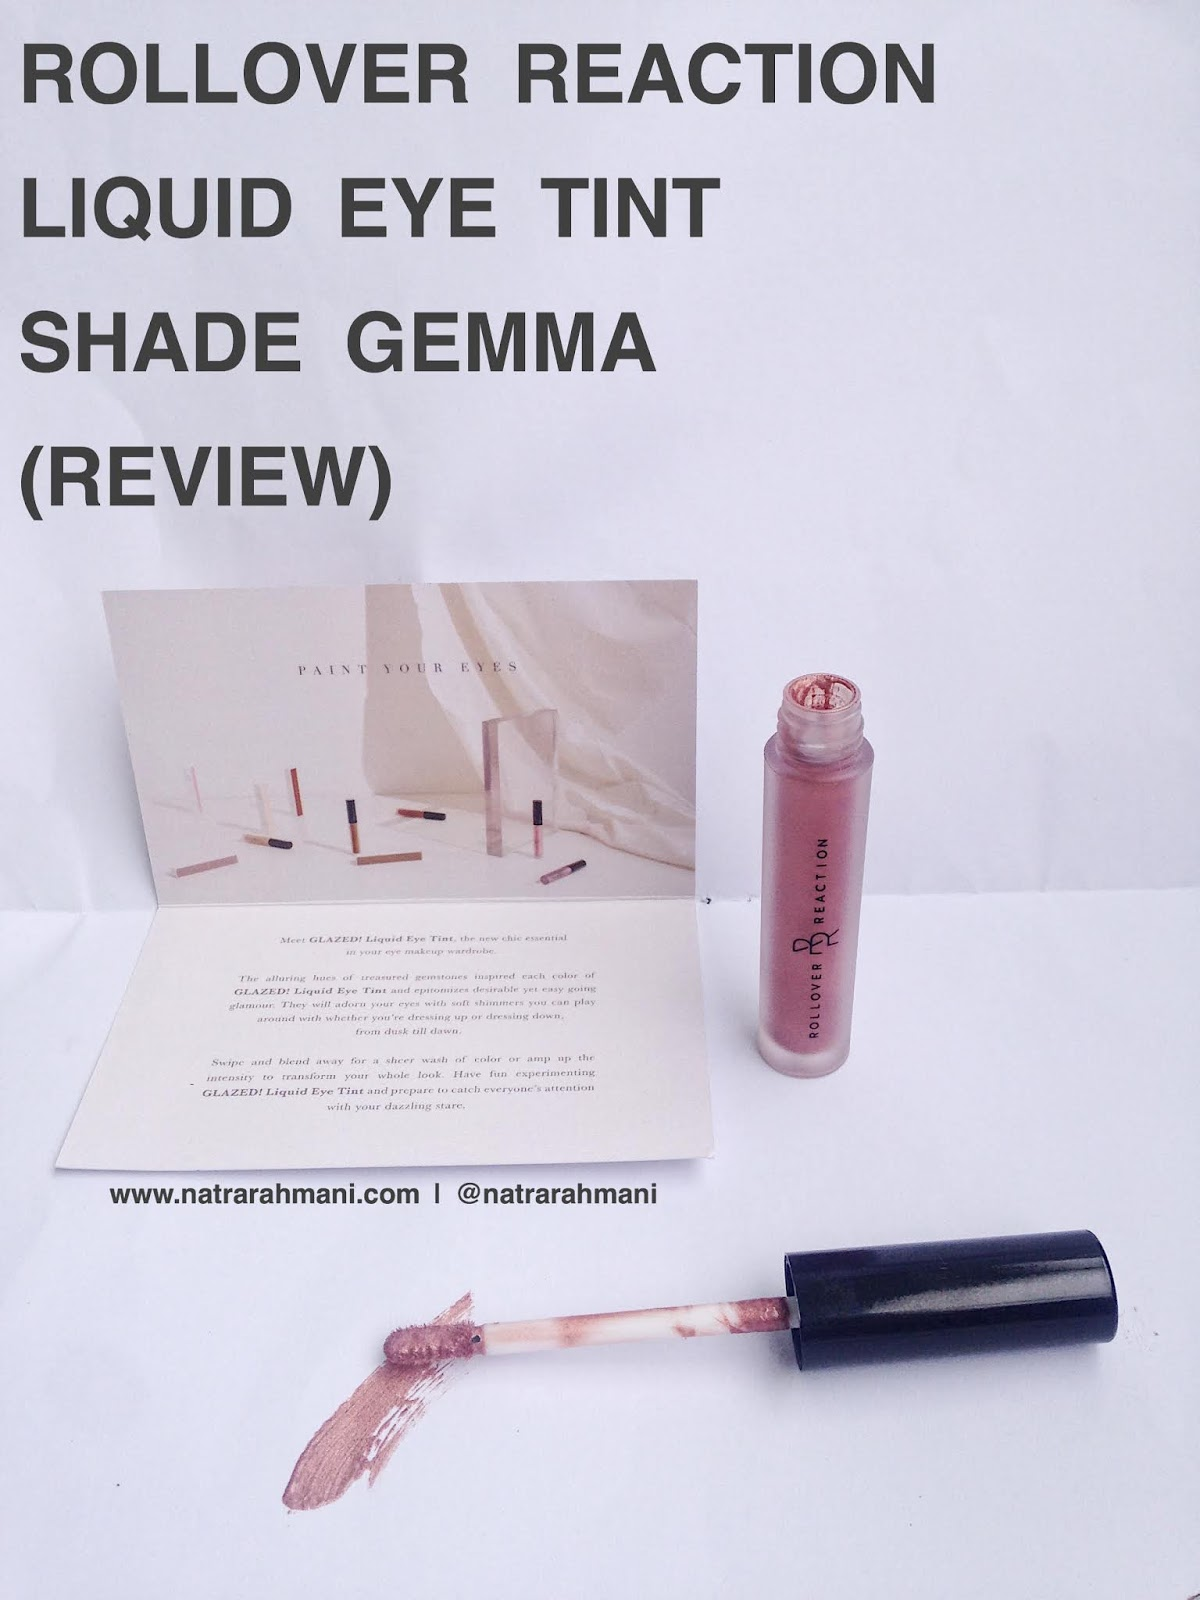 rollover-reaction-liqiud-eye-tint-gemma-review-natrarahmani